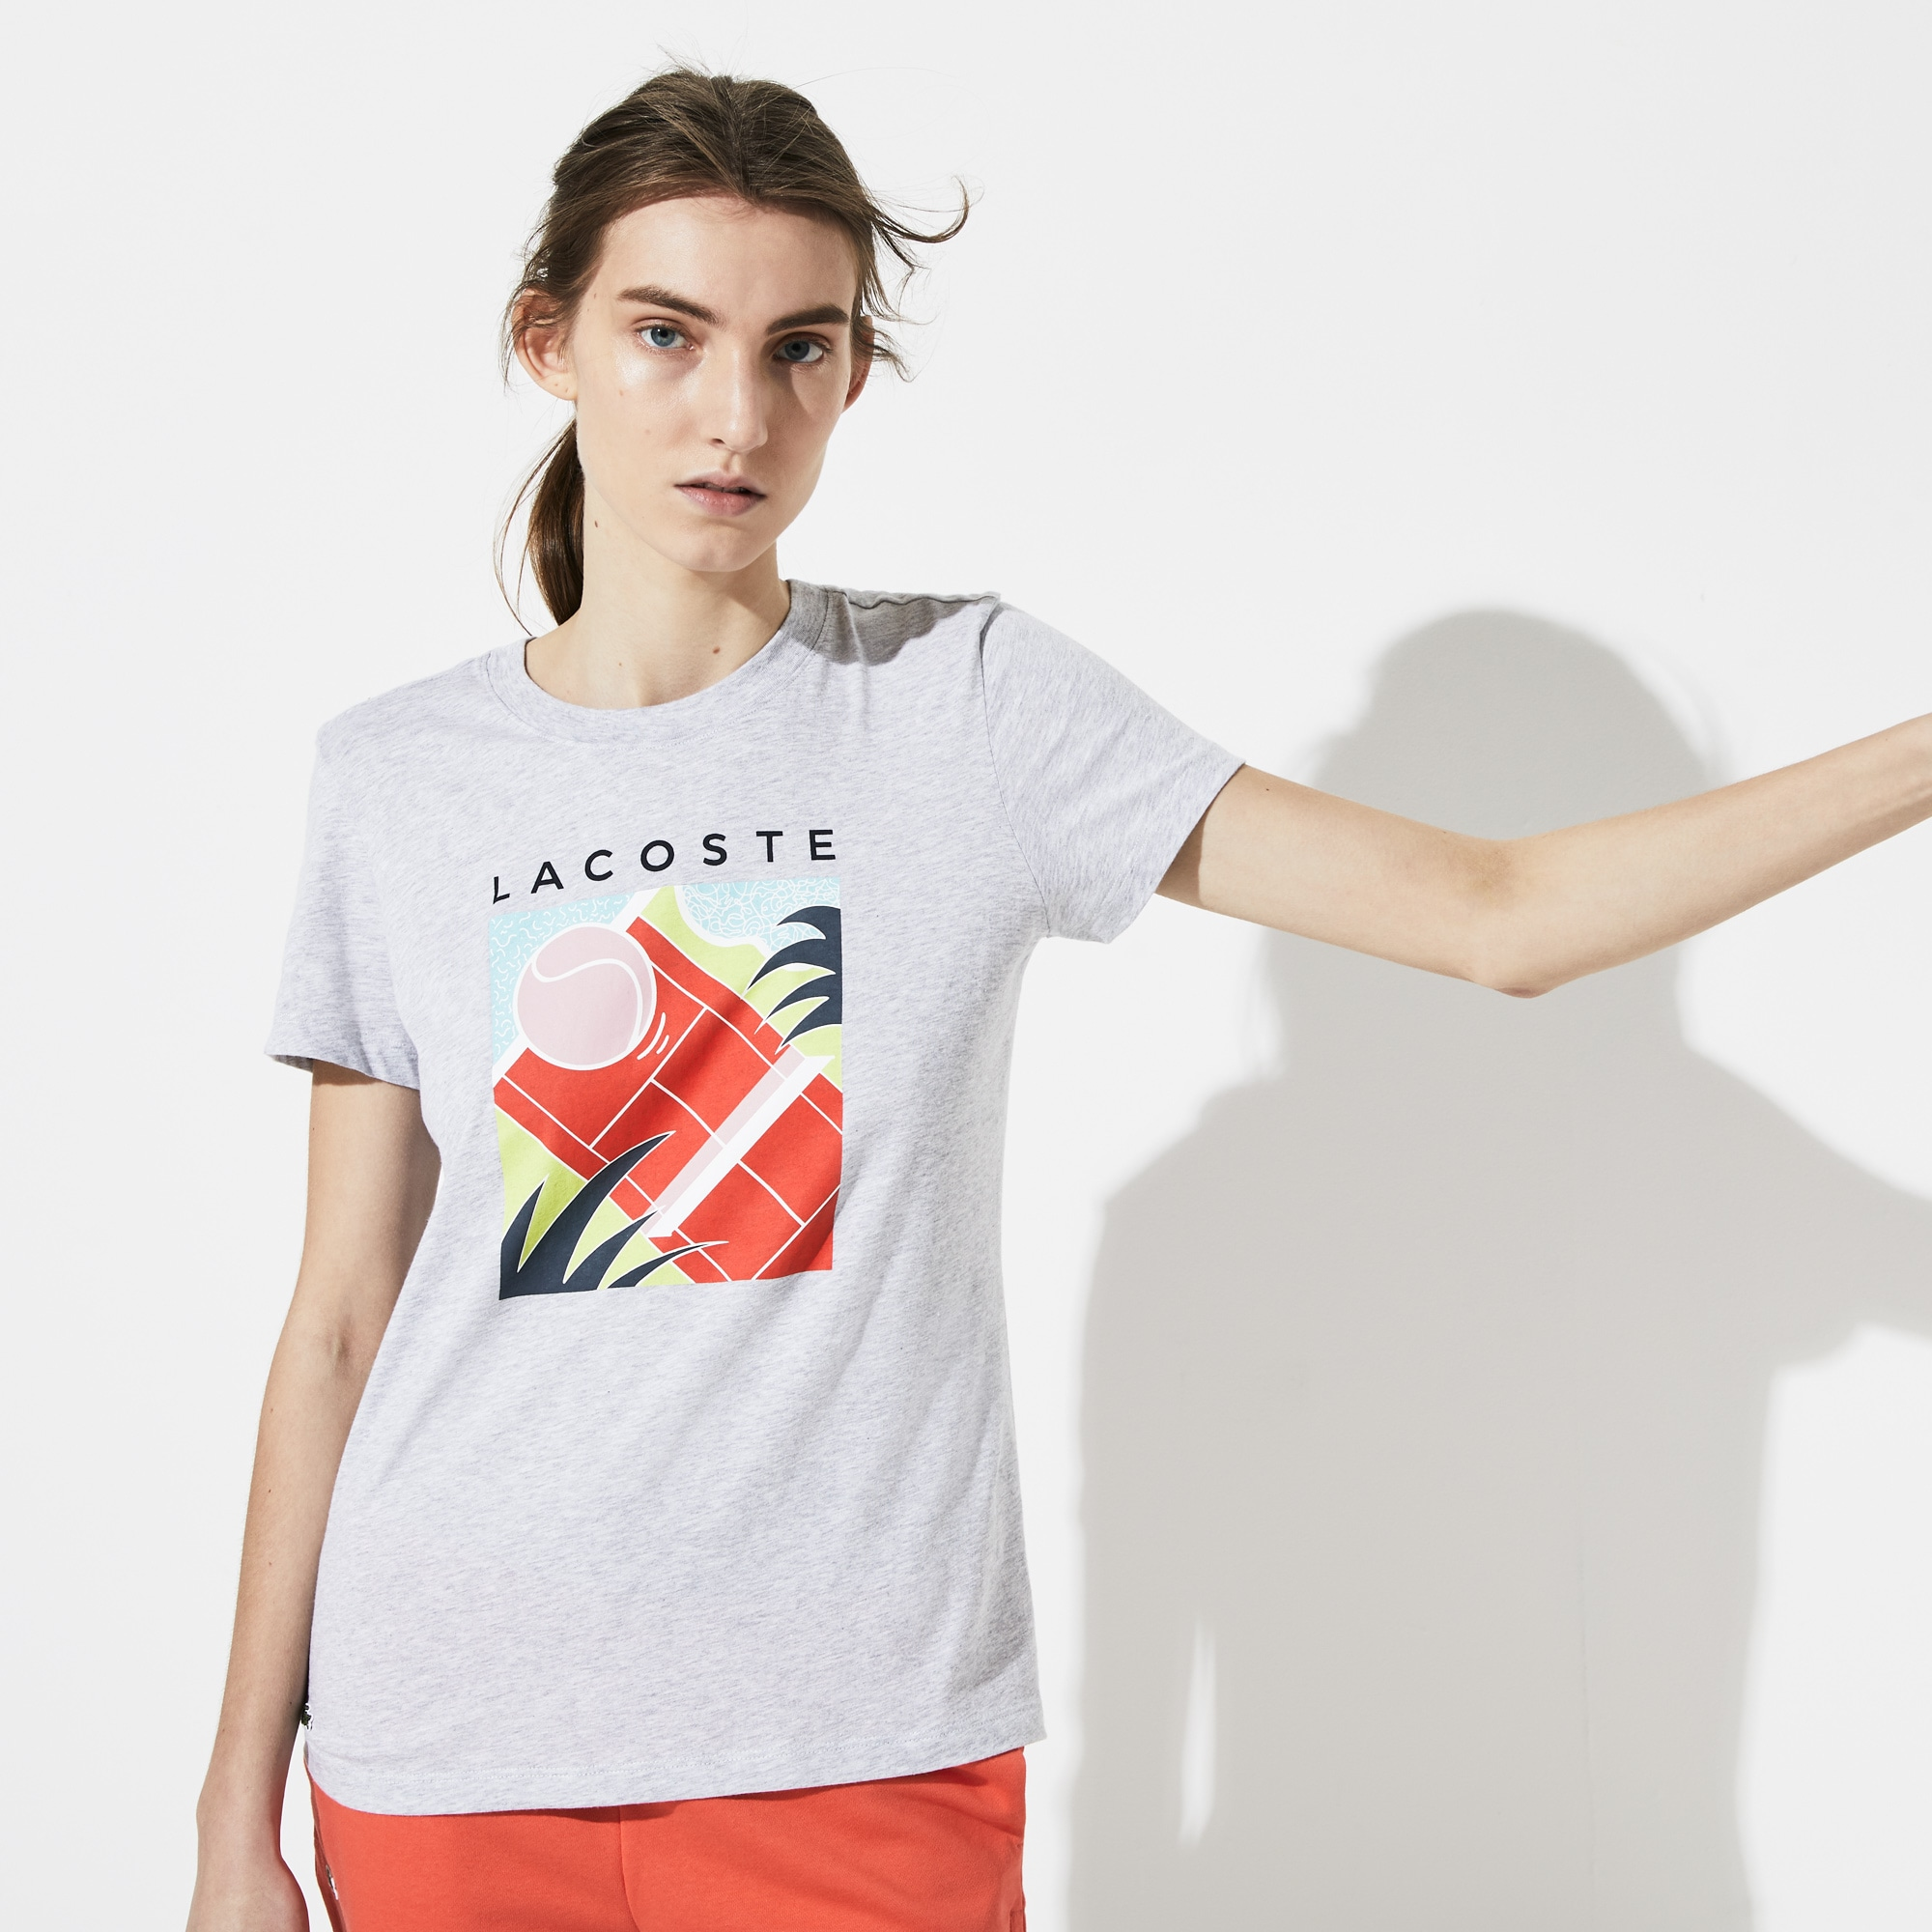 2fc687a92eed Women's T Shirts | Lacoste T Shirts for Women | LACOSTE